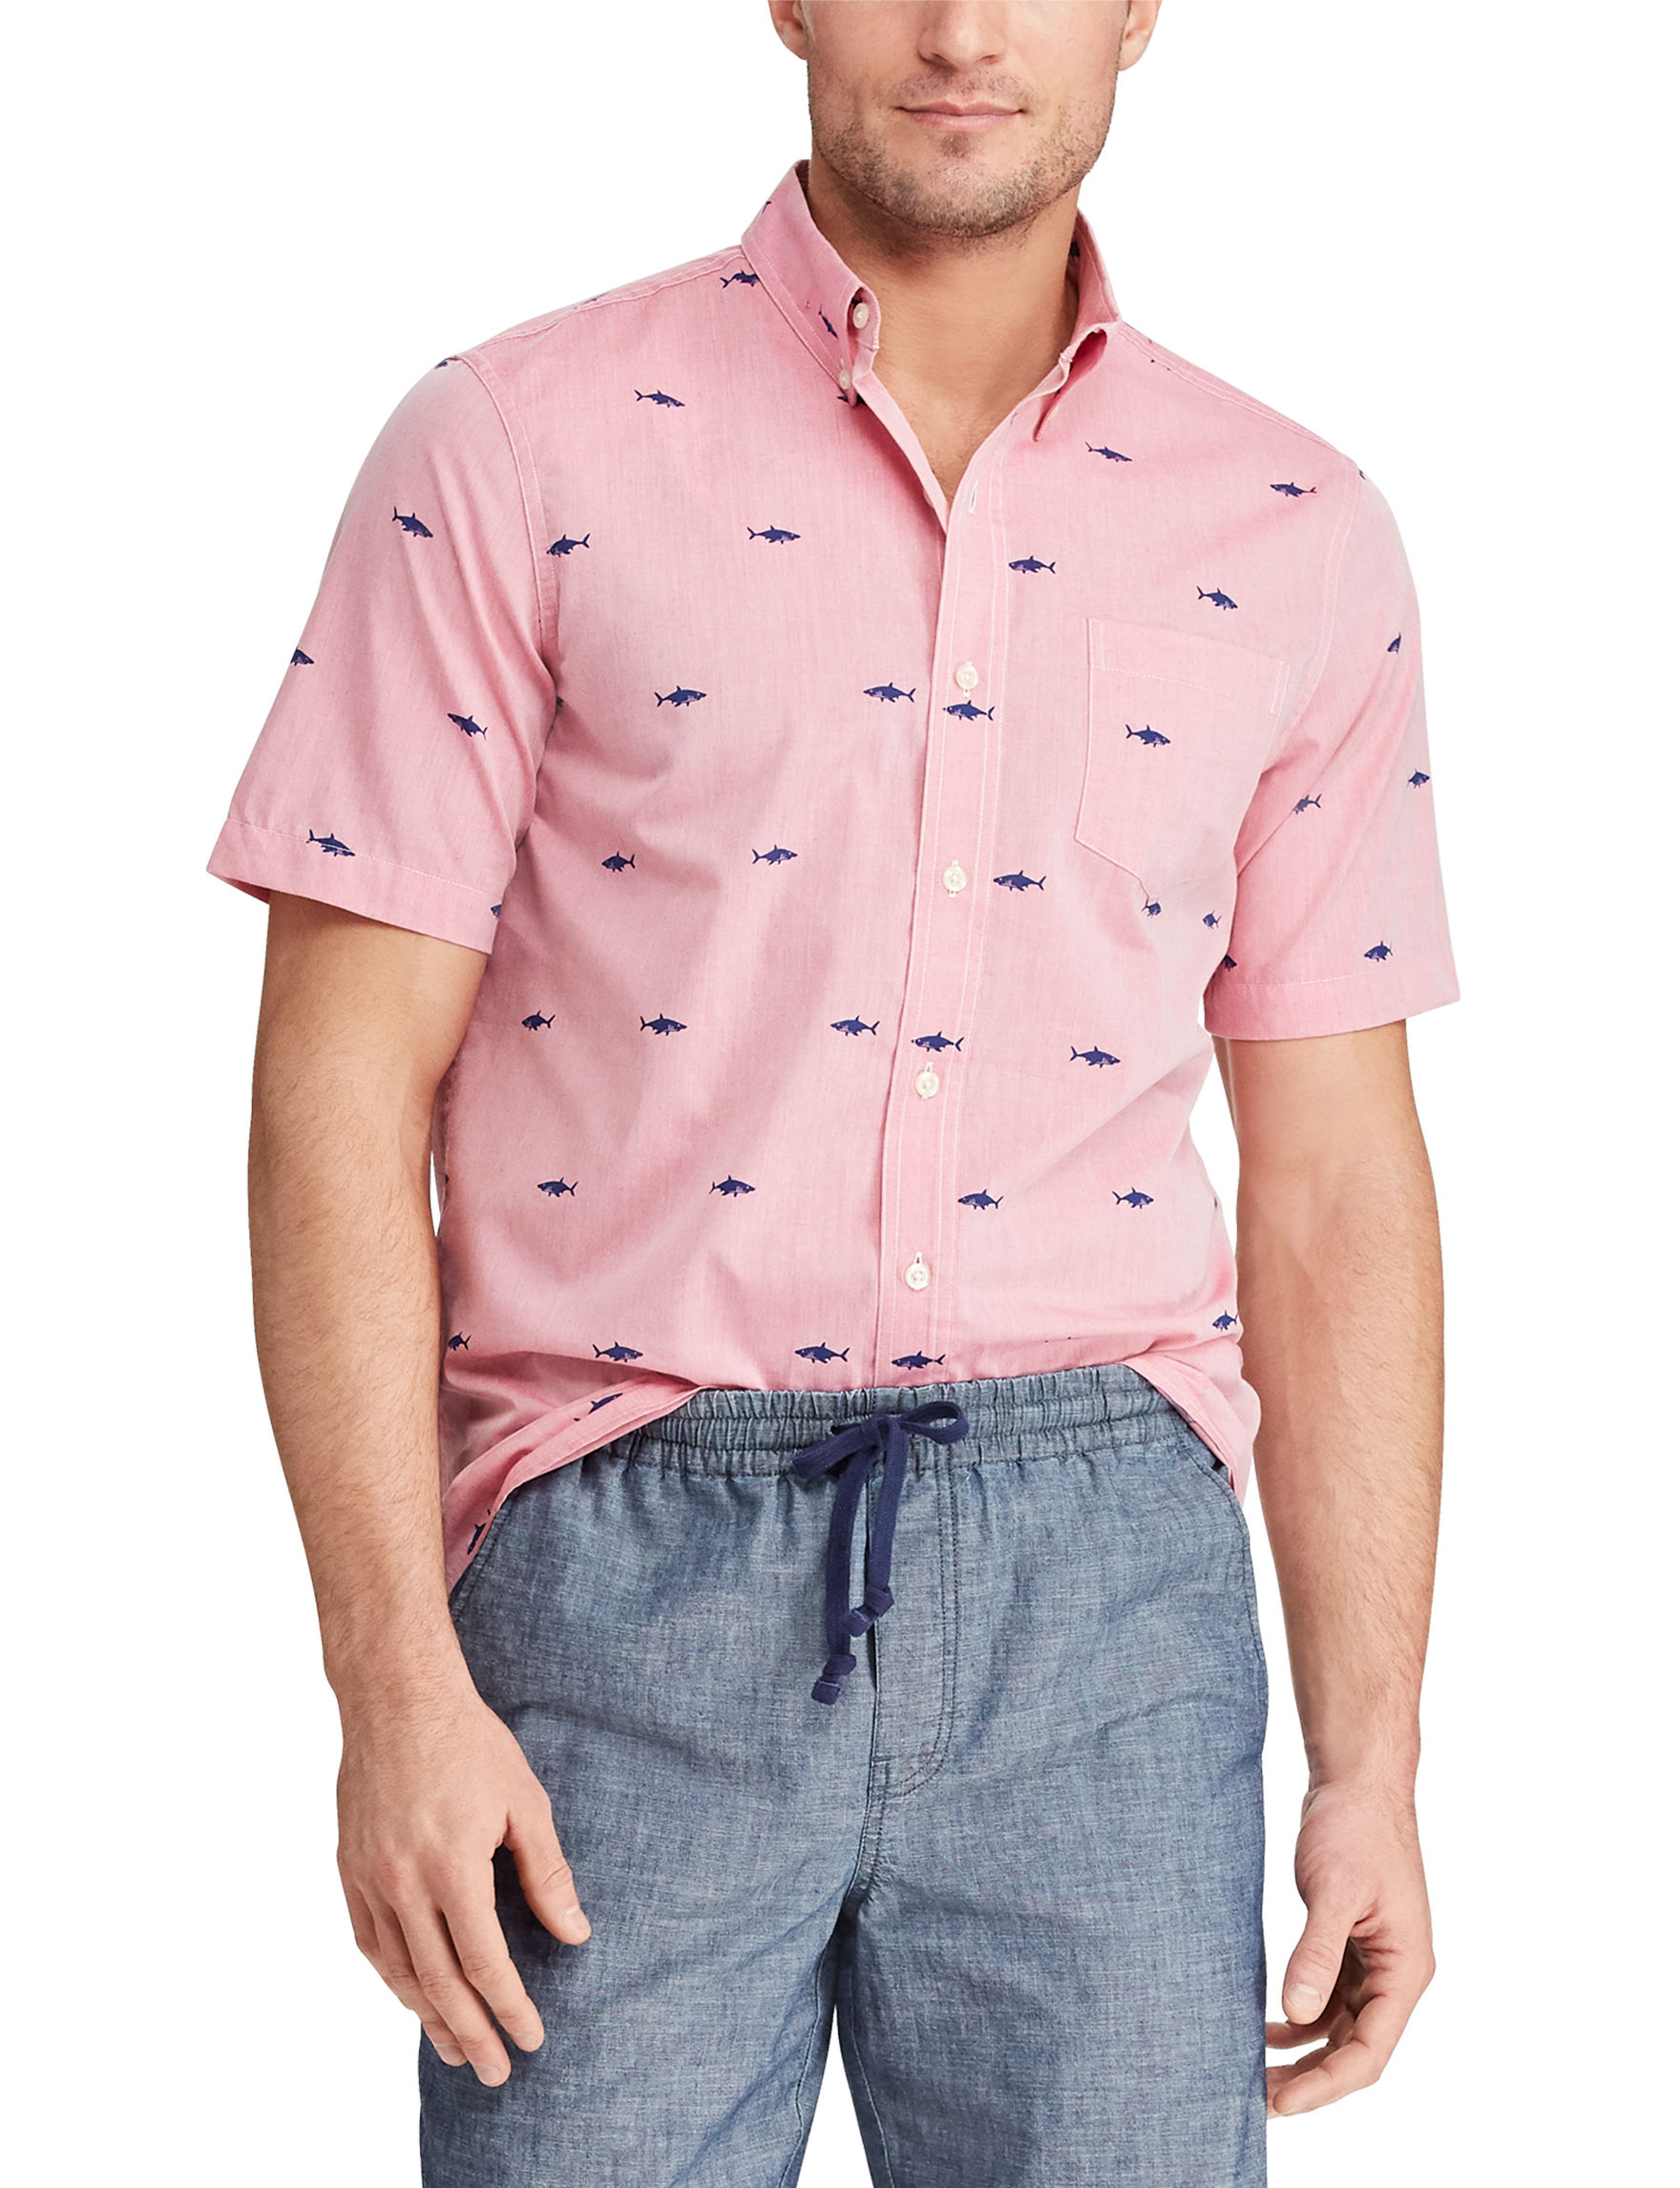 Chaps Pink / Multi Casual Button Down Shirts